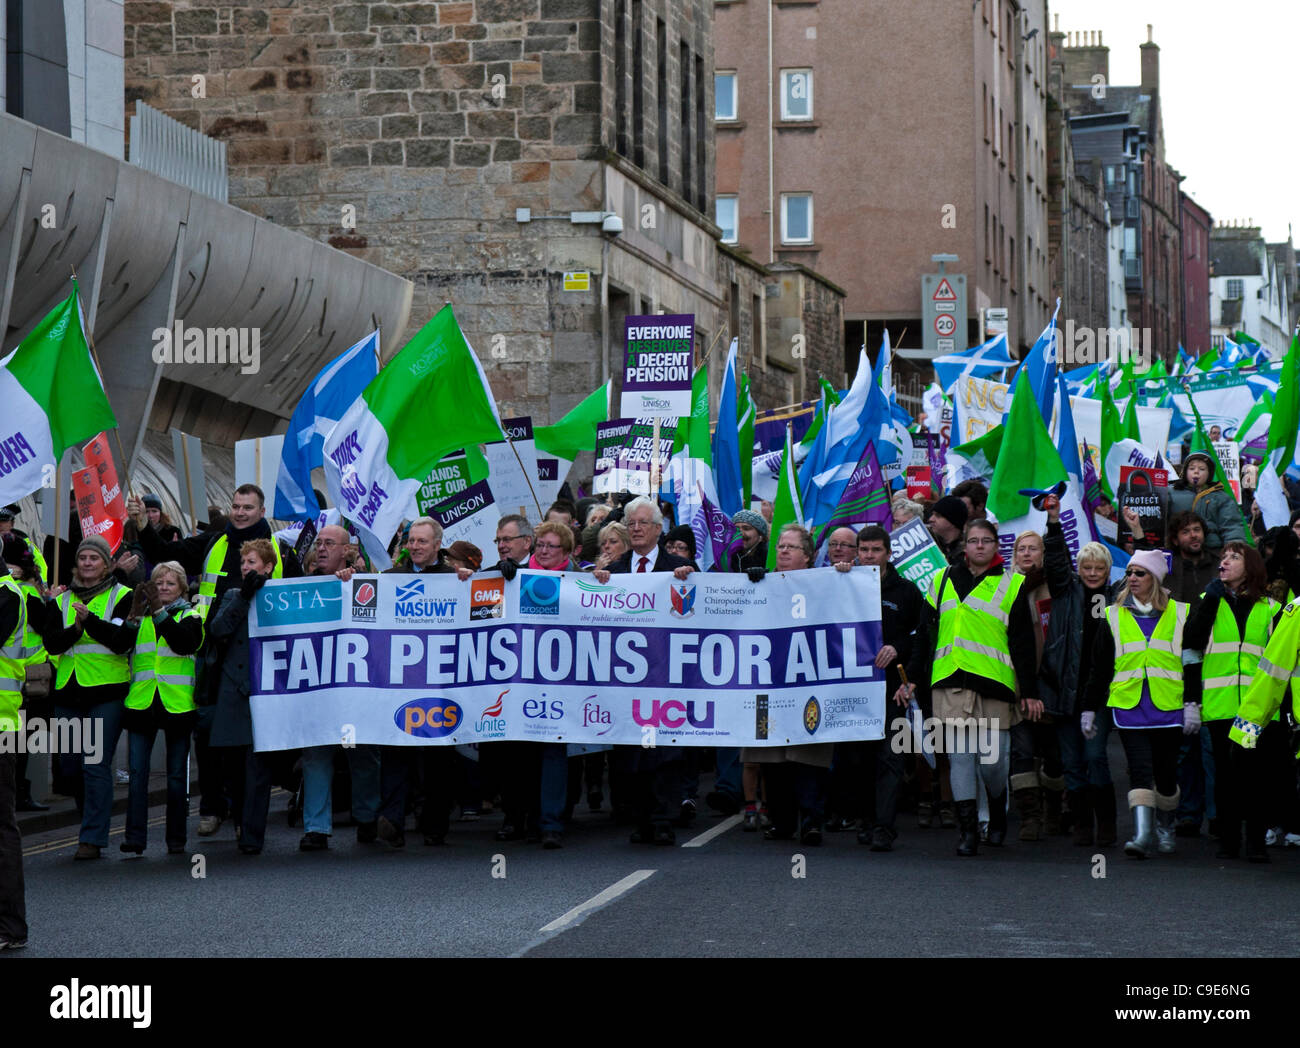 Edinburgh, UK. 30th Nov, 2011. Public sector workers and union members demonstrate in Edinburgh City Centre during - Stock Image